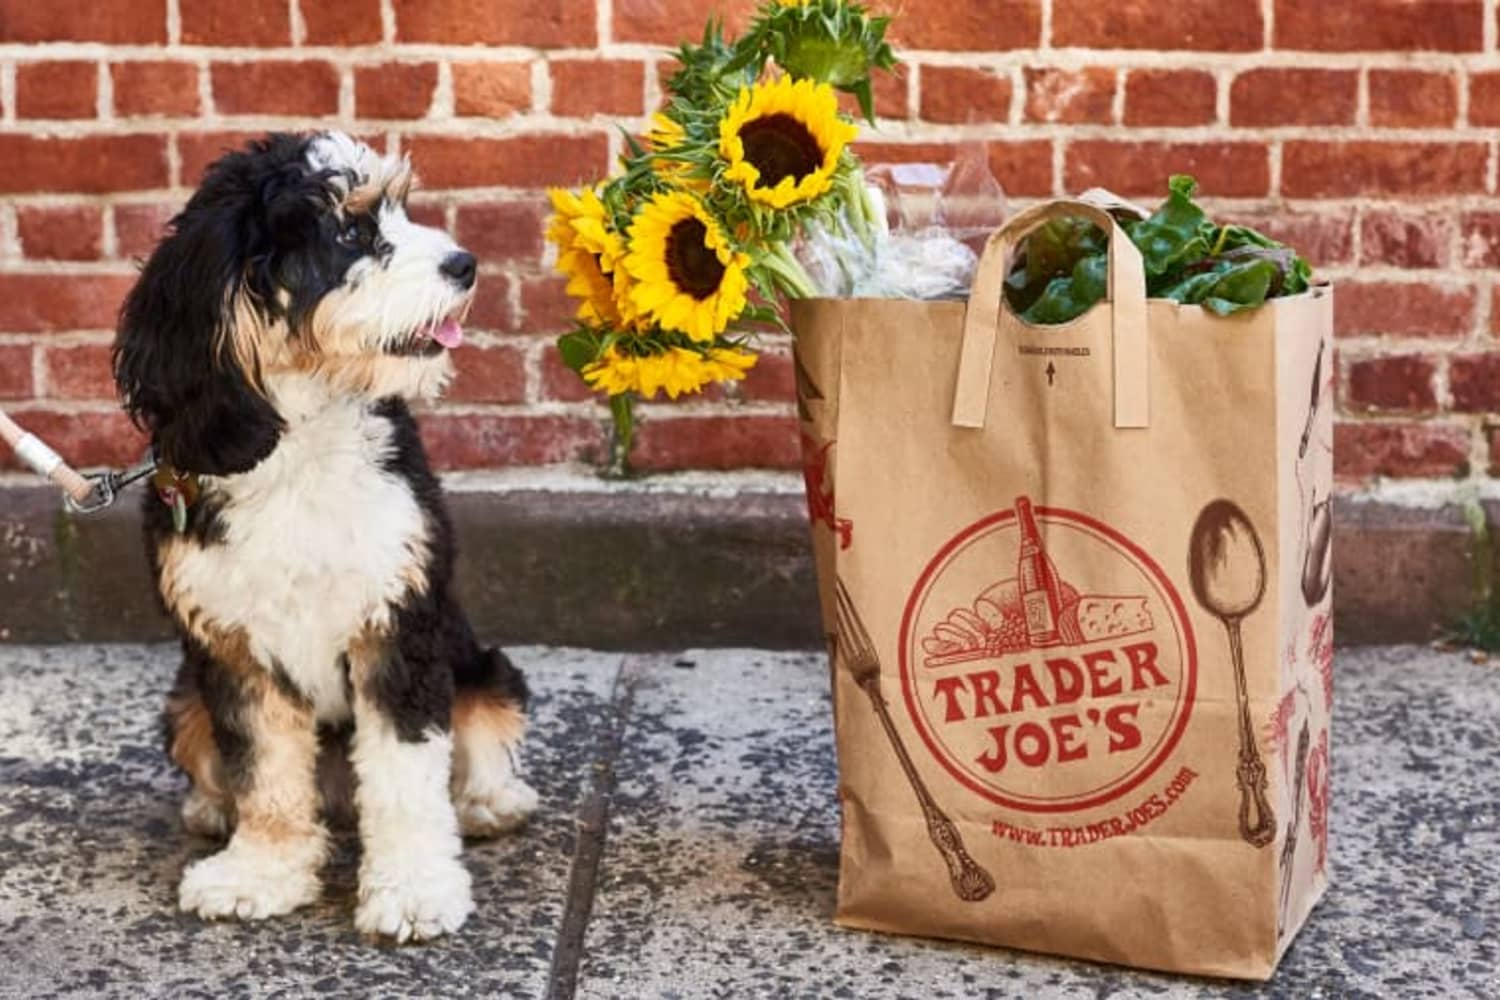 Trader Joe's Has Little Planters That Look Like People for Just $6